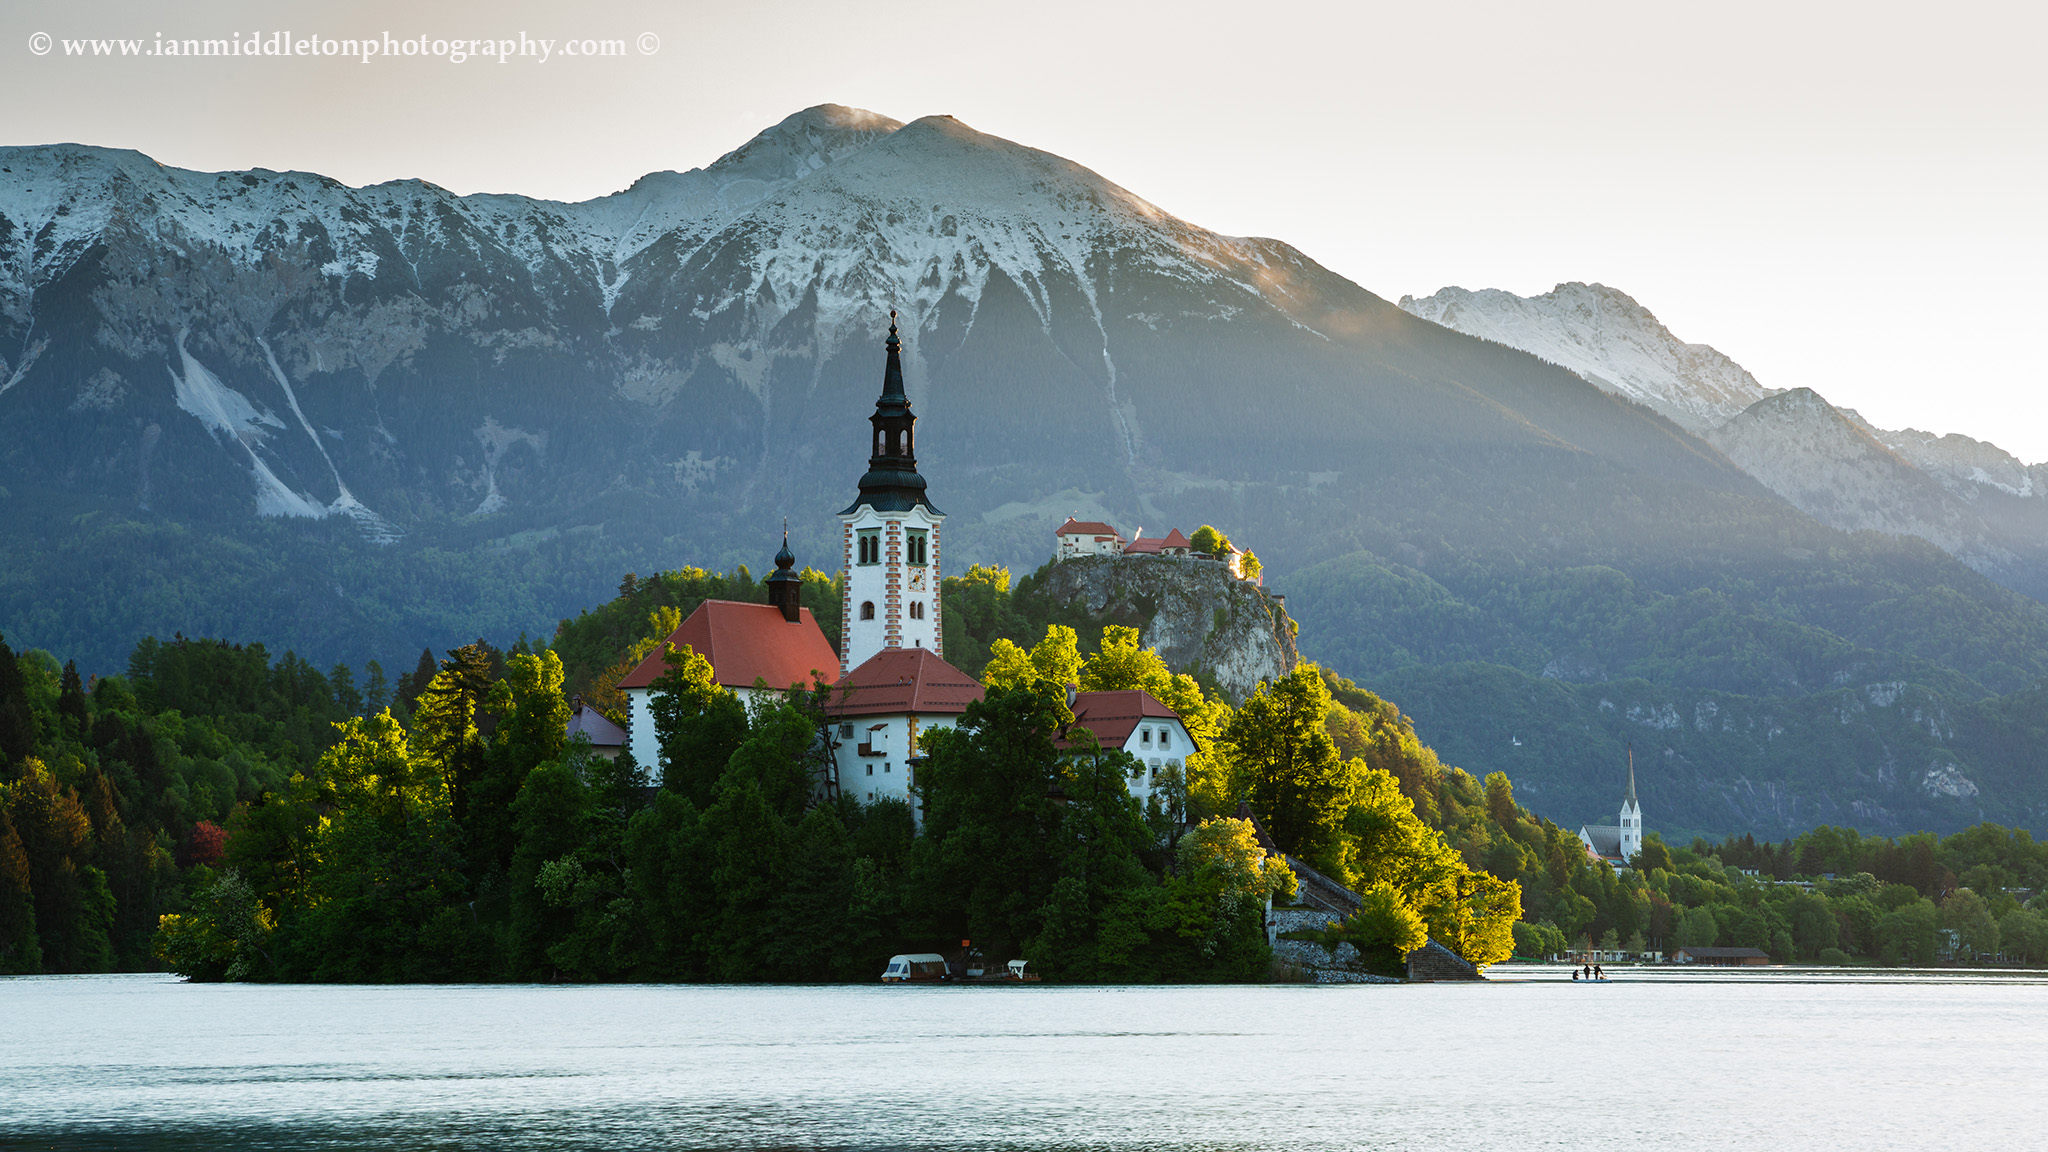 Morning spring light at Lake Bled's island church with the hilltop castle and Mount Stol of the Karavanke Mountains behind, Slovenia.